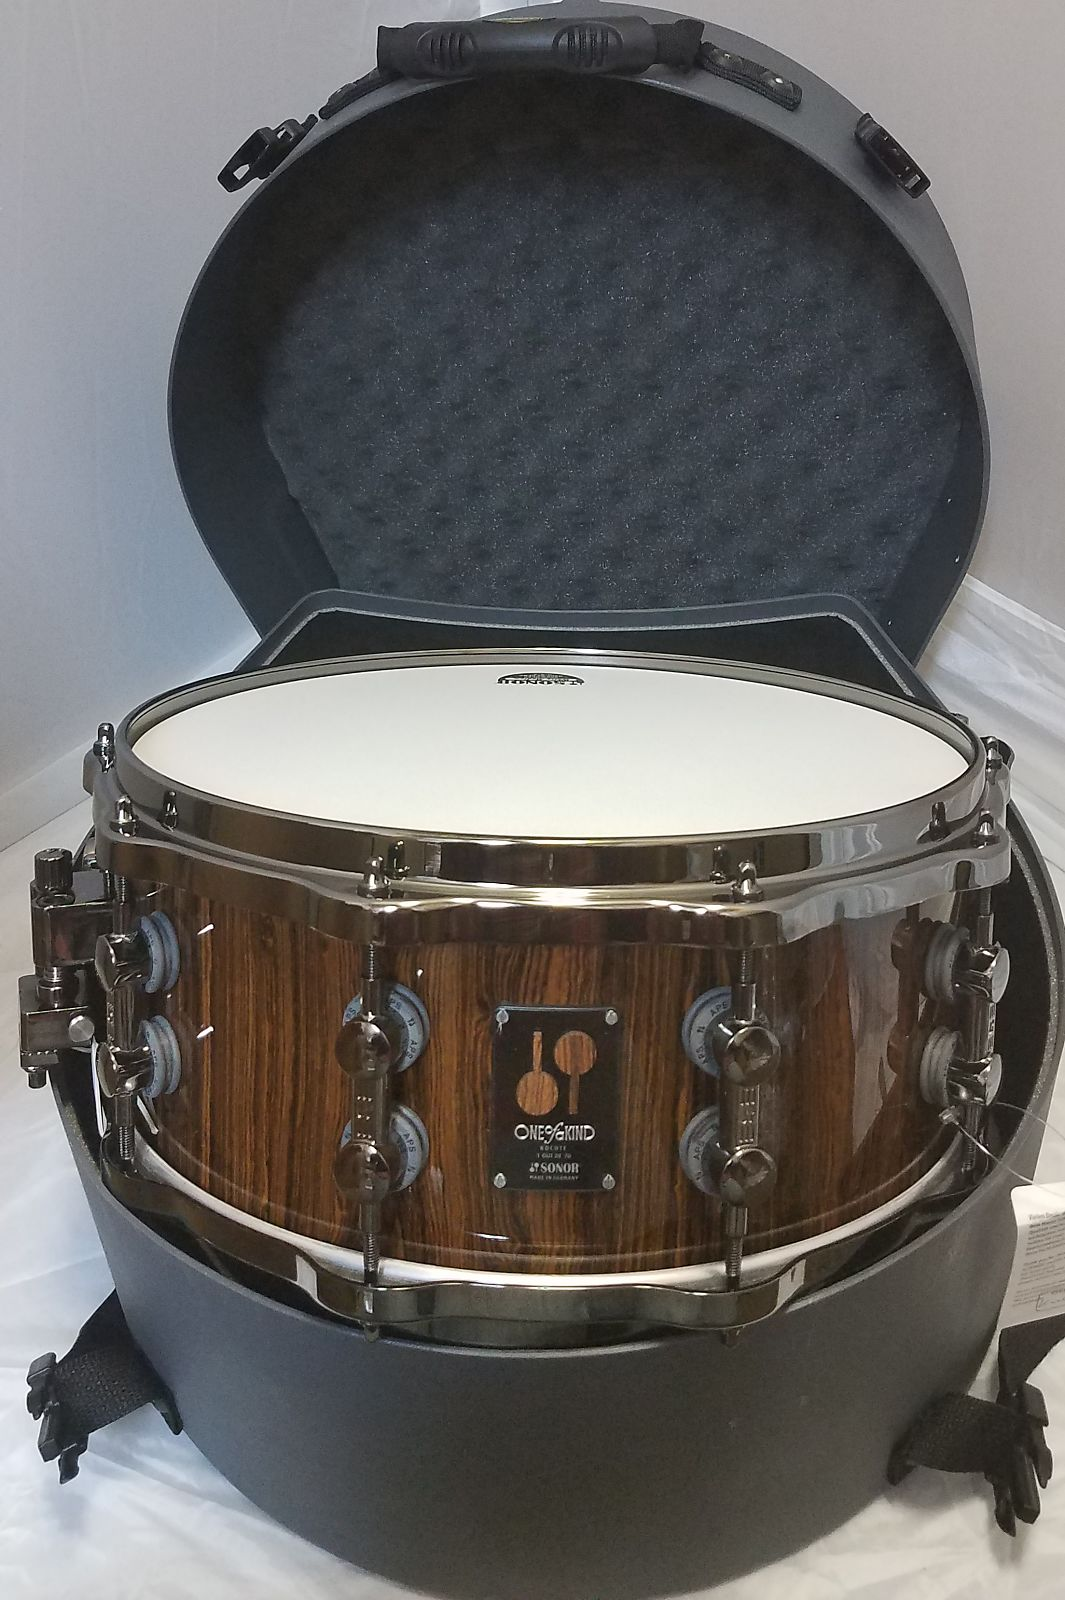 NEW Sonor Bocote One Of A Kind 21 ply 14x6 Beech OOAK Snare Drum 1 of 70 w/Hard Case Worldwide Ship!